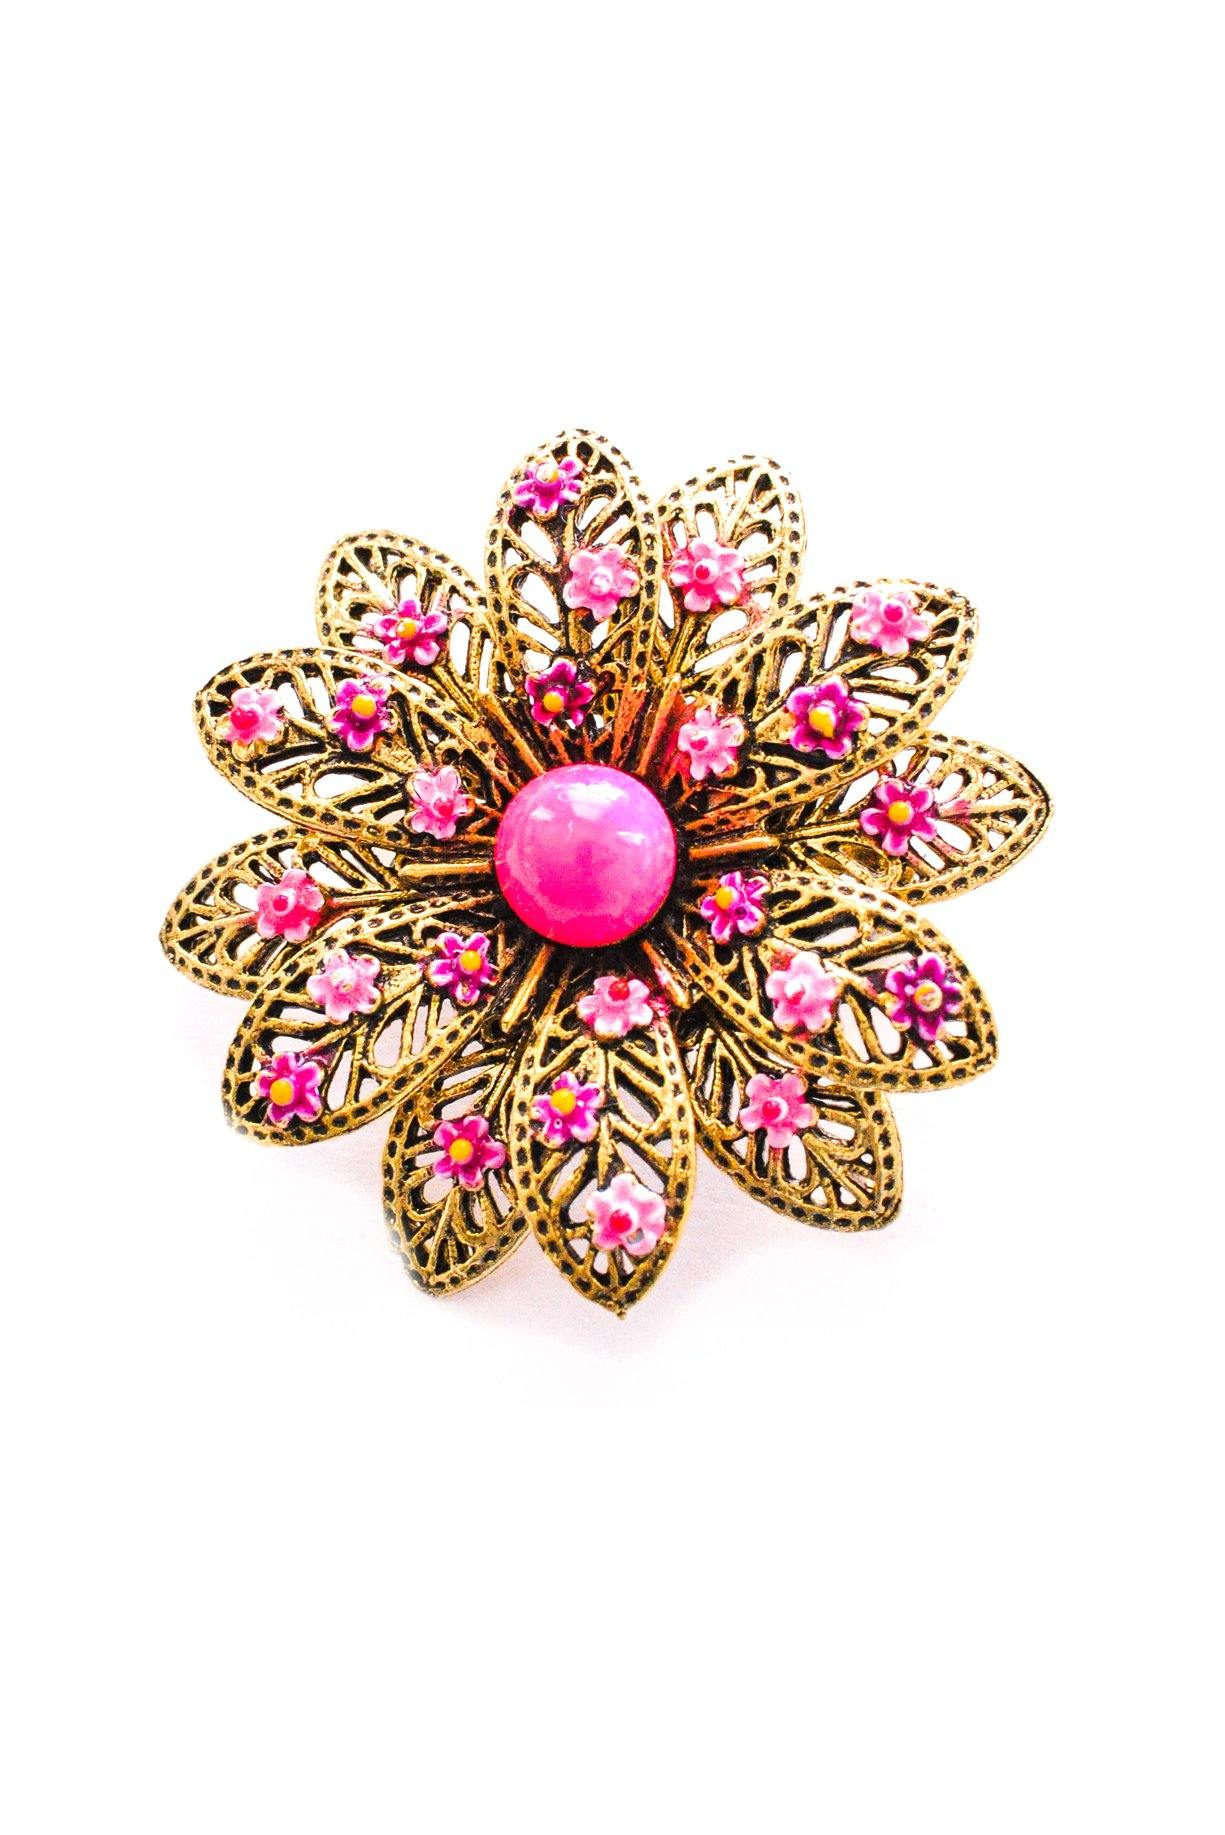 Vintage pink daisies brooch from Sweet & Spark.